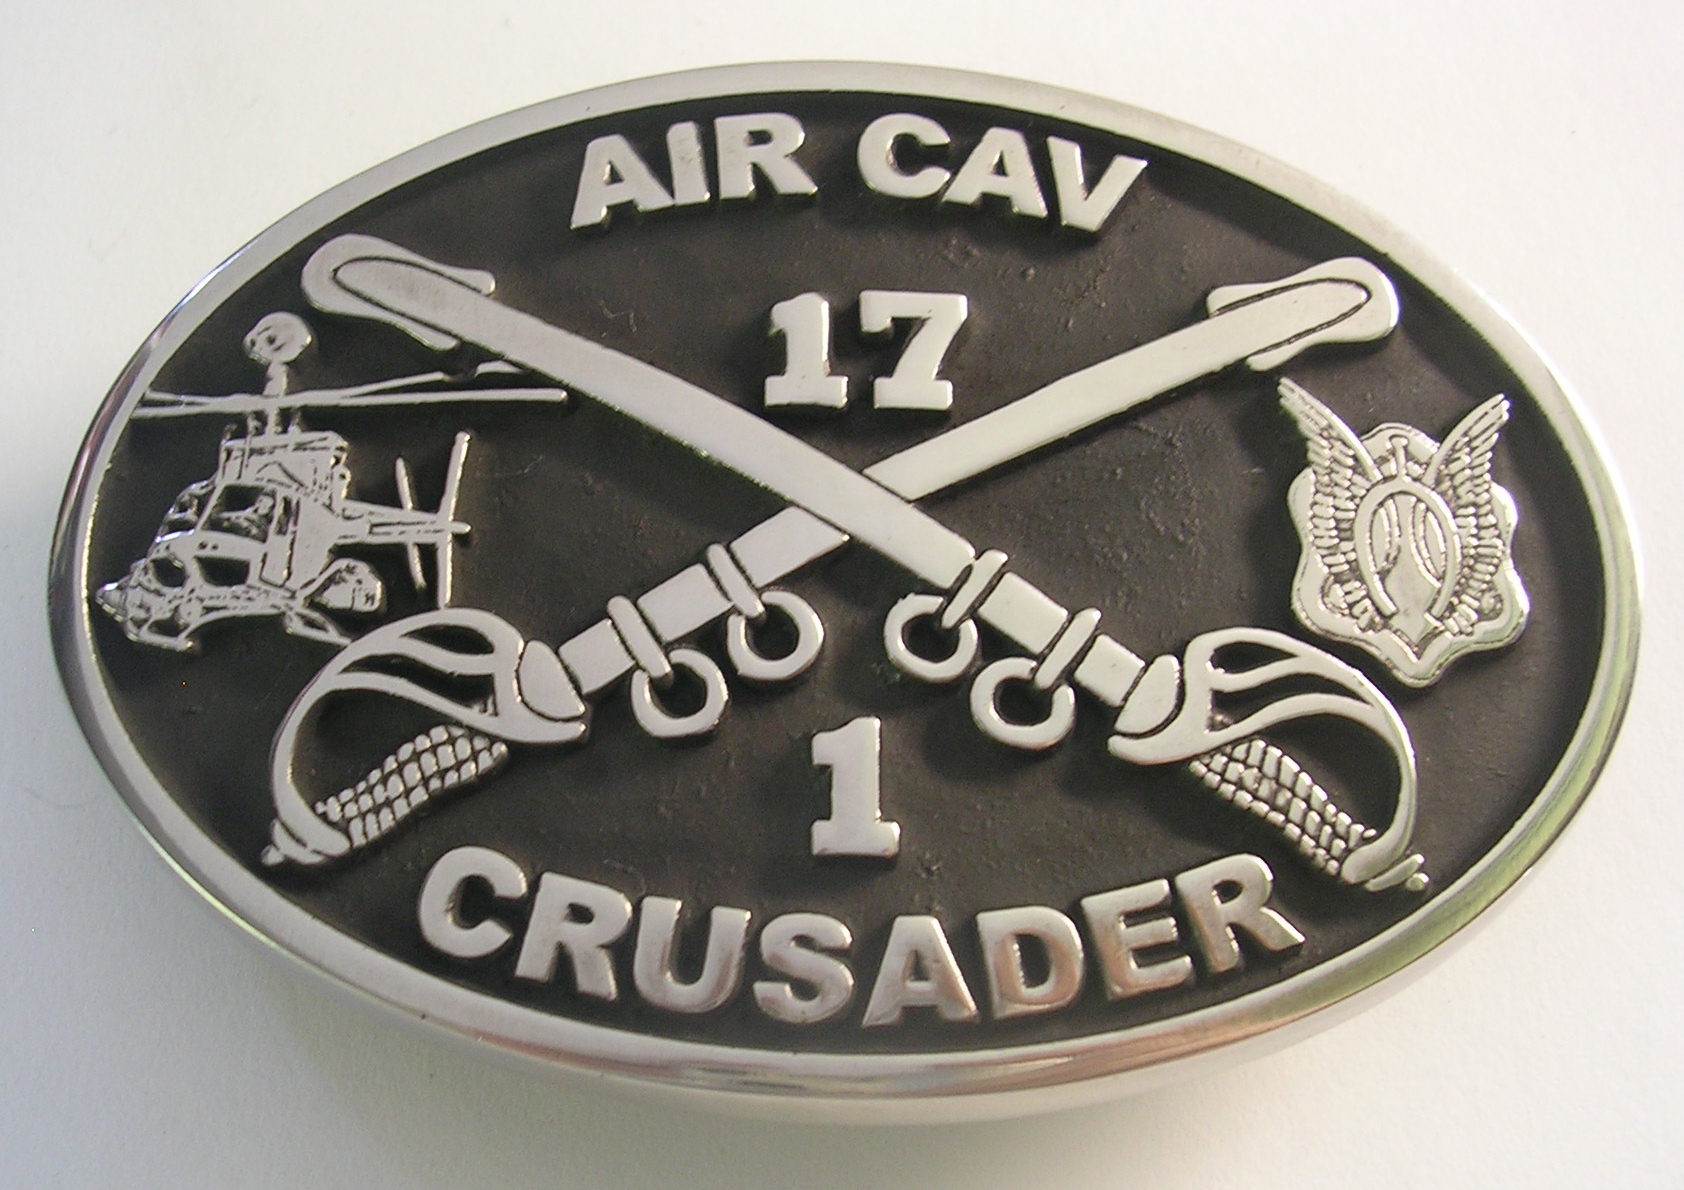 1-17 Crusader Belt Buckle